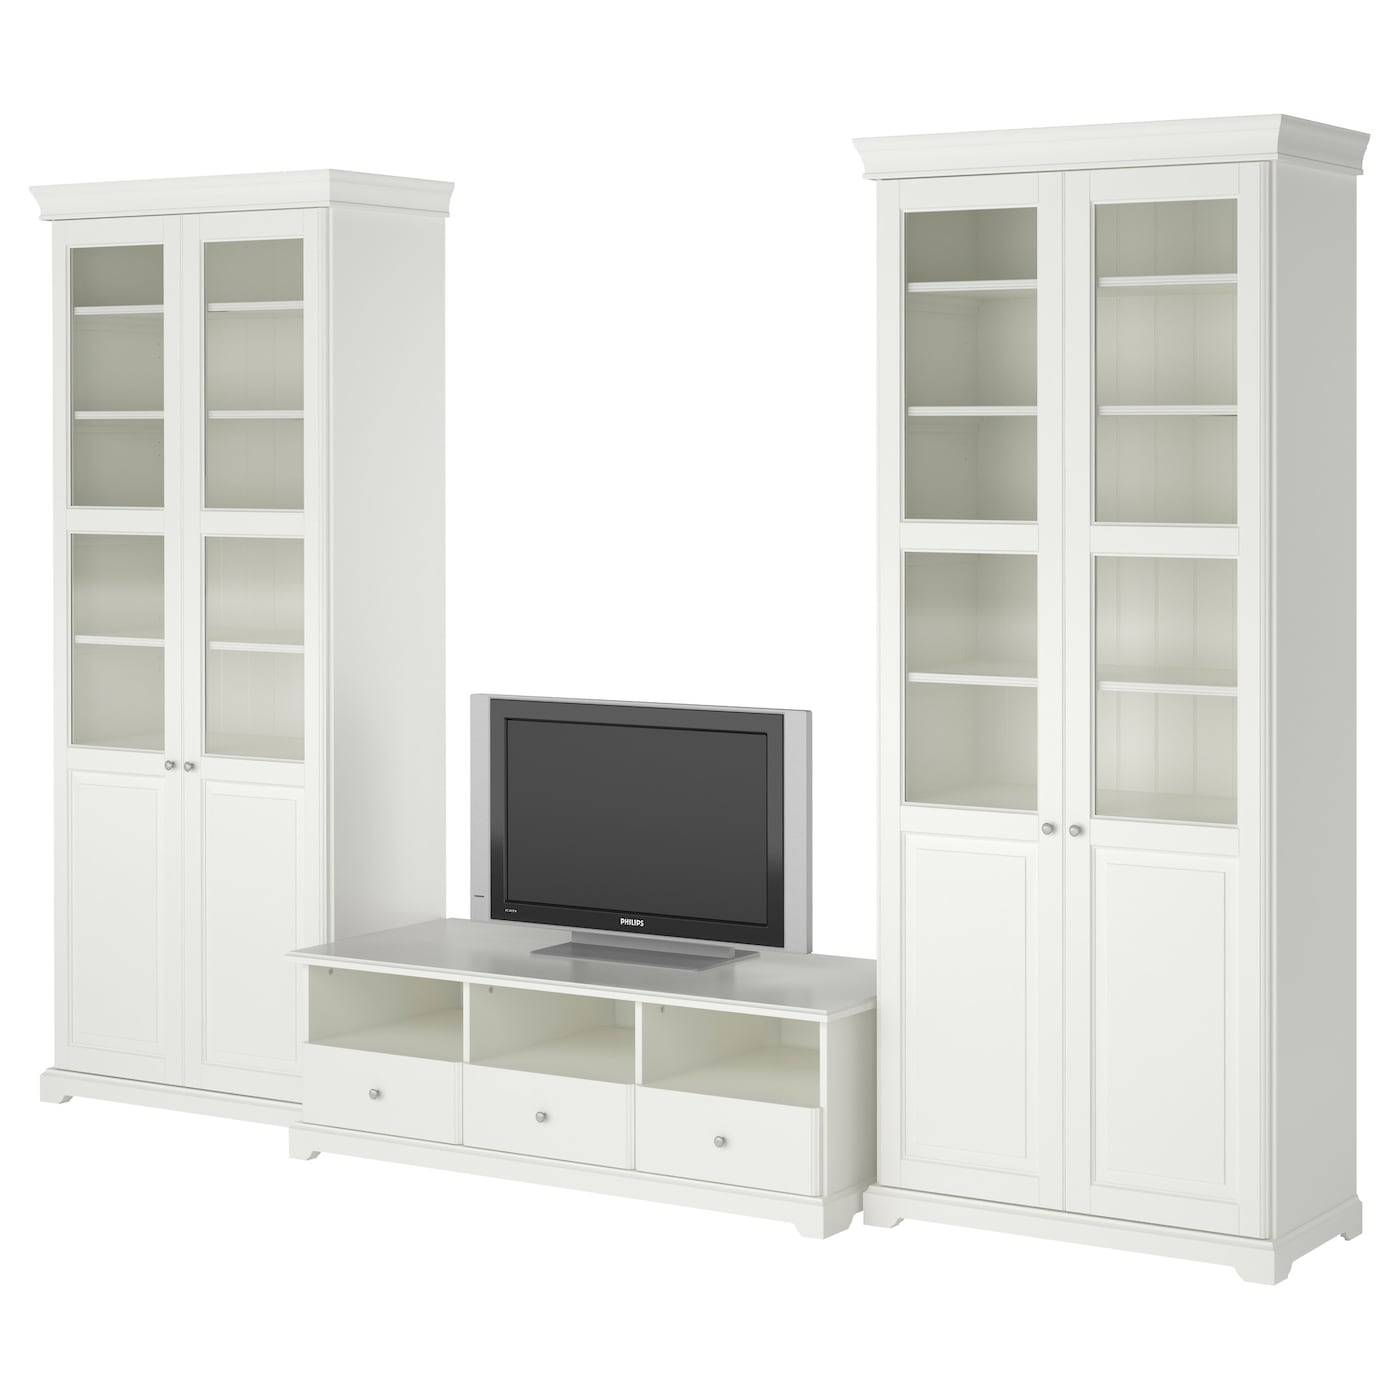 Liatorp tv storage combination white 331x214 cm ikea - Muebles tv ikea ...